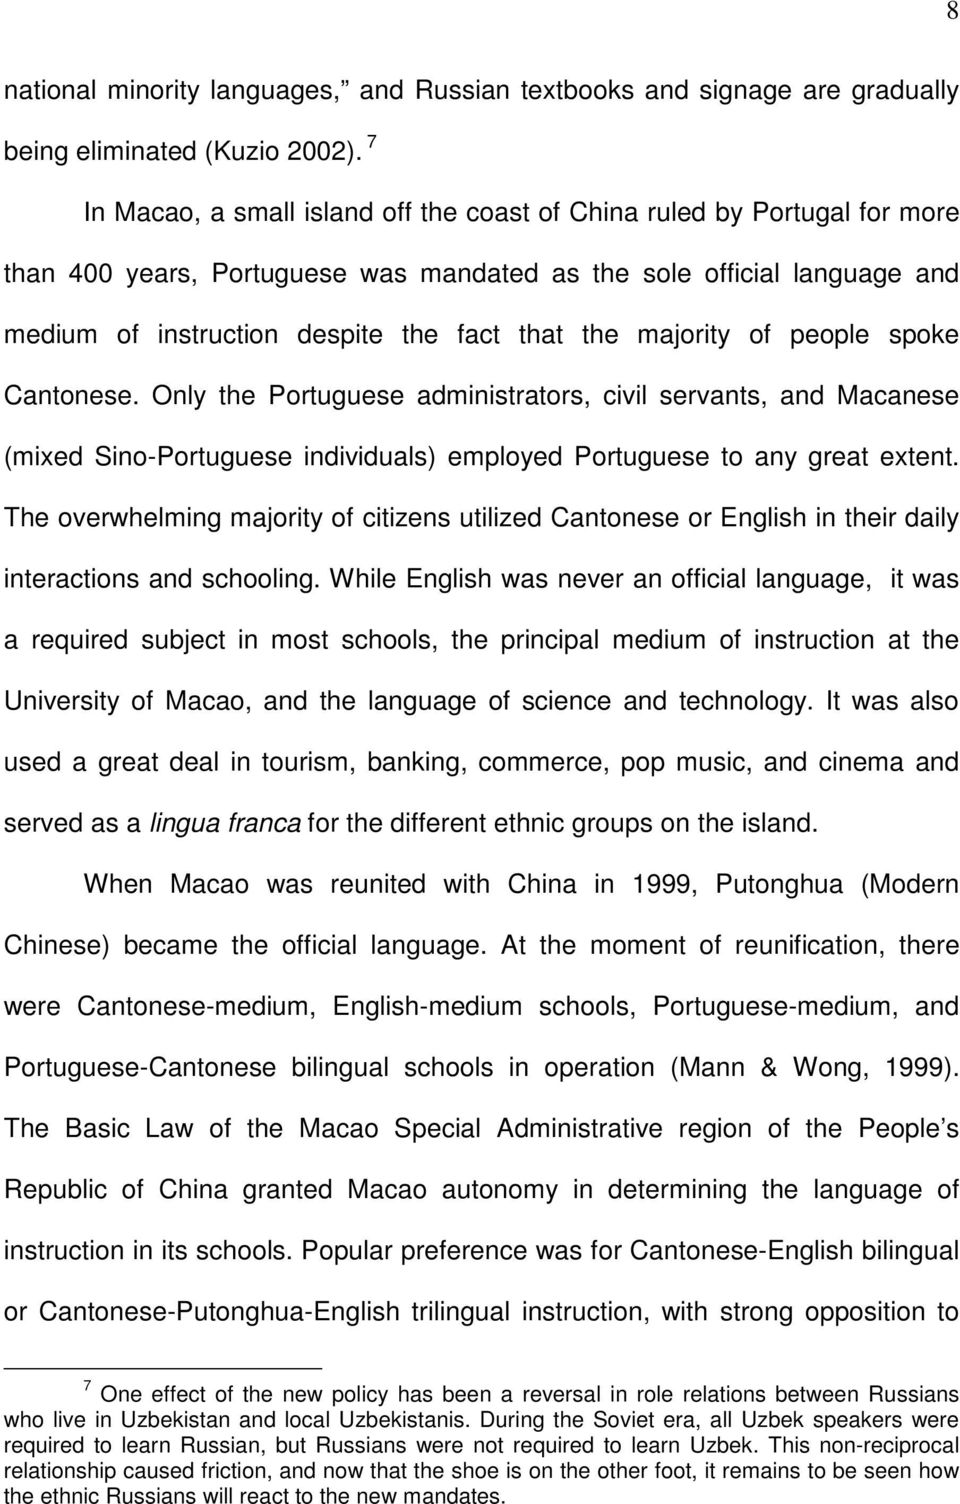 majority of people spoke Cantonese. Only the Portuguese administrators, civil servants, and Macanese (mixed Sino-Portuguese individuals) employed Portuguese to any great extent.